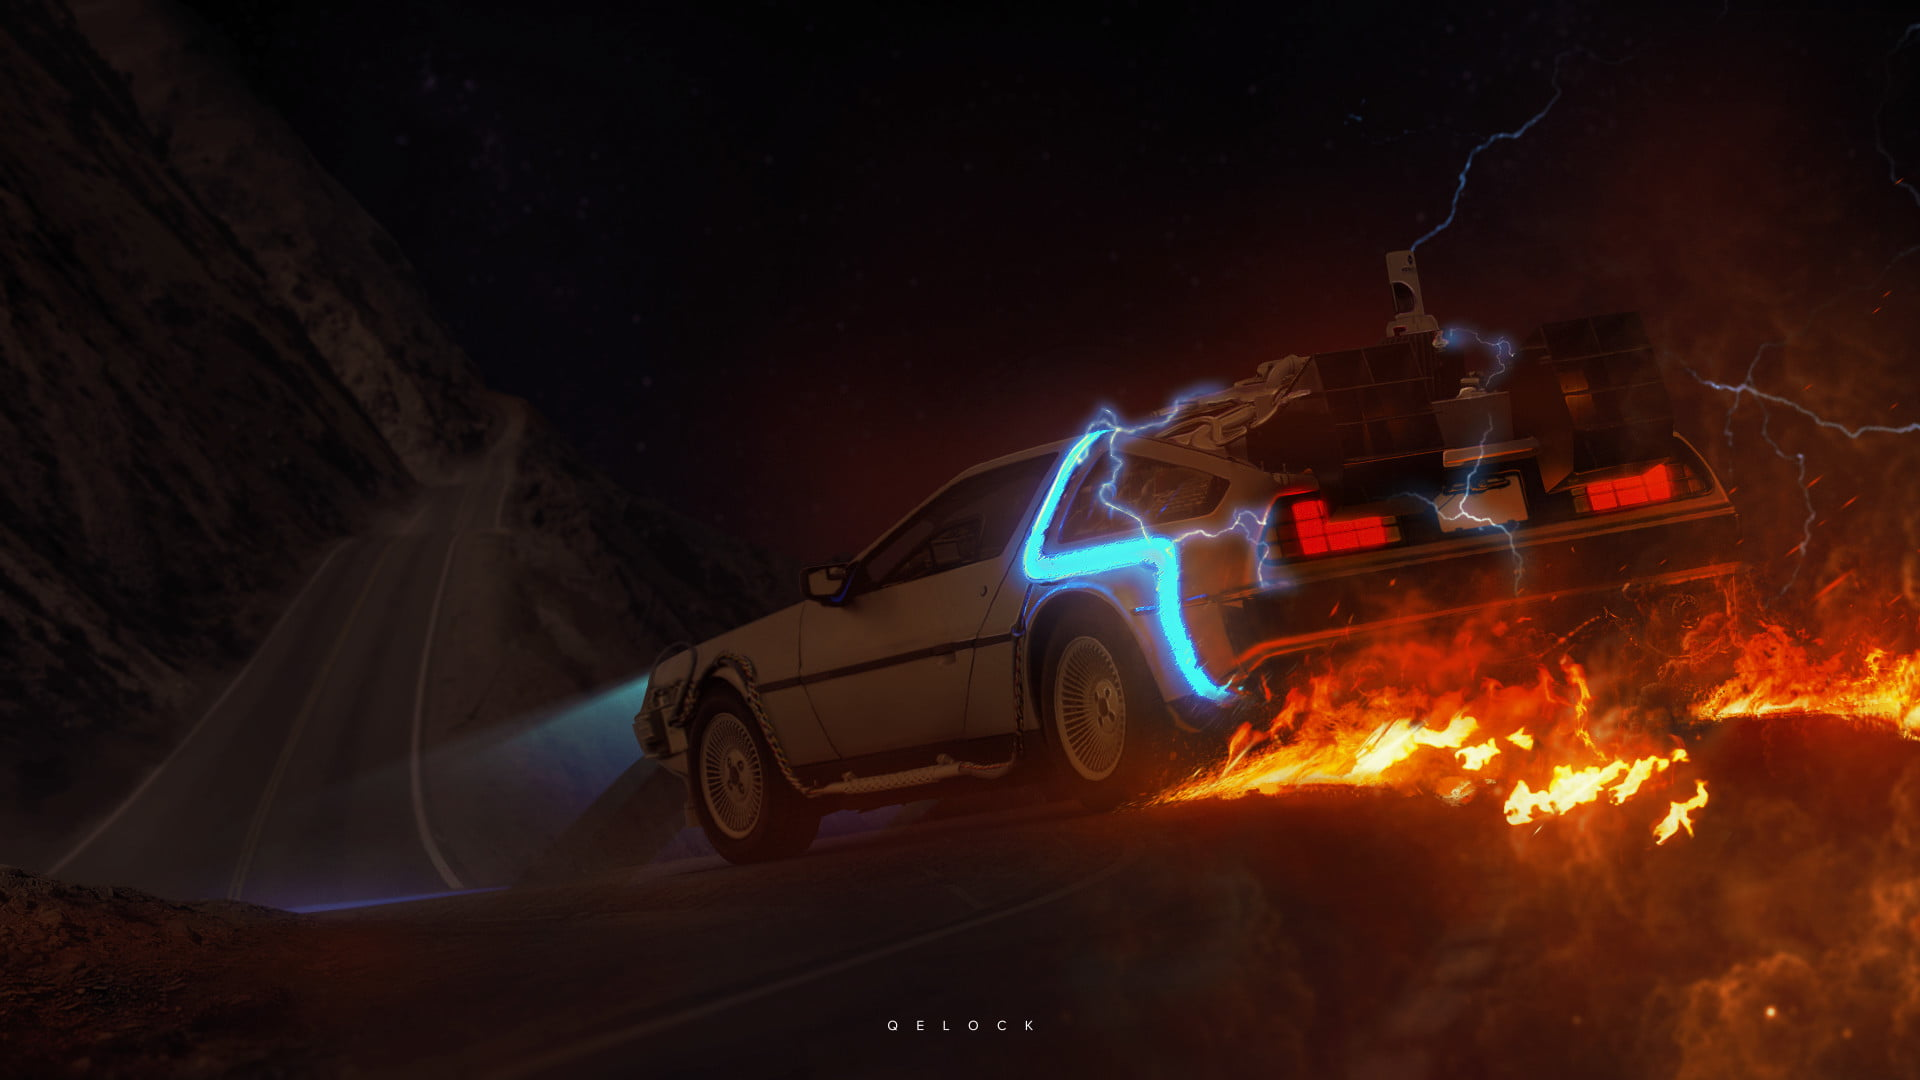 Initial D white Toyota AE86 digital wallpaper car Back to the 1920x1080